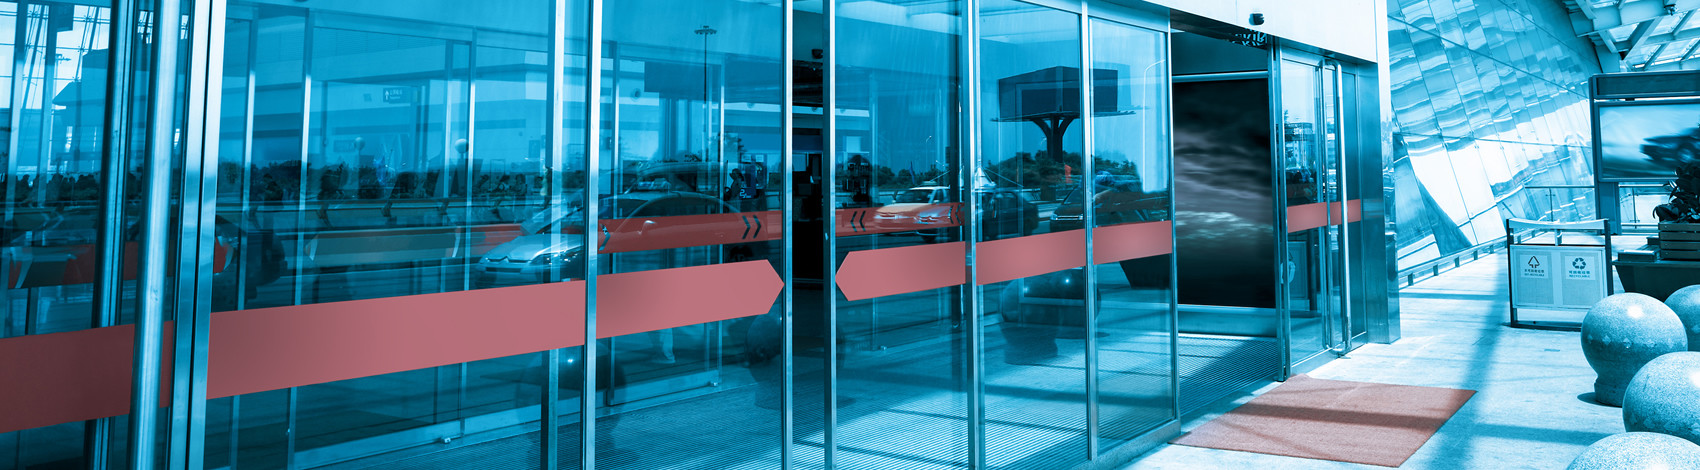 automatic doors hawaii